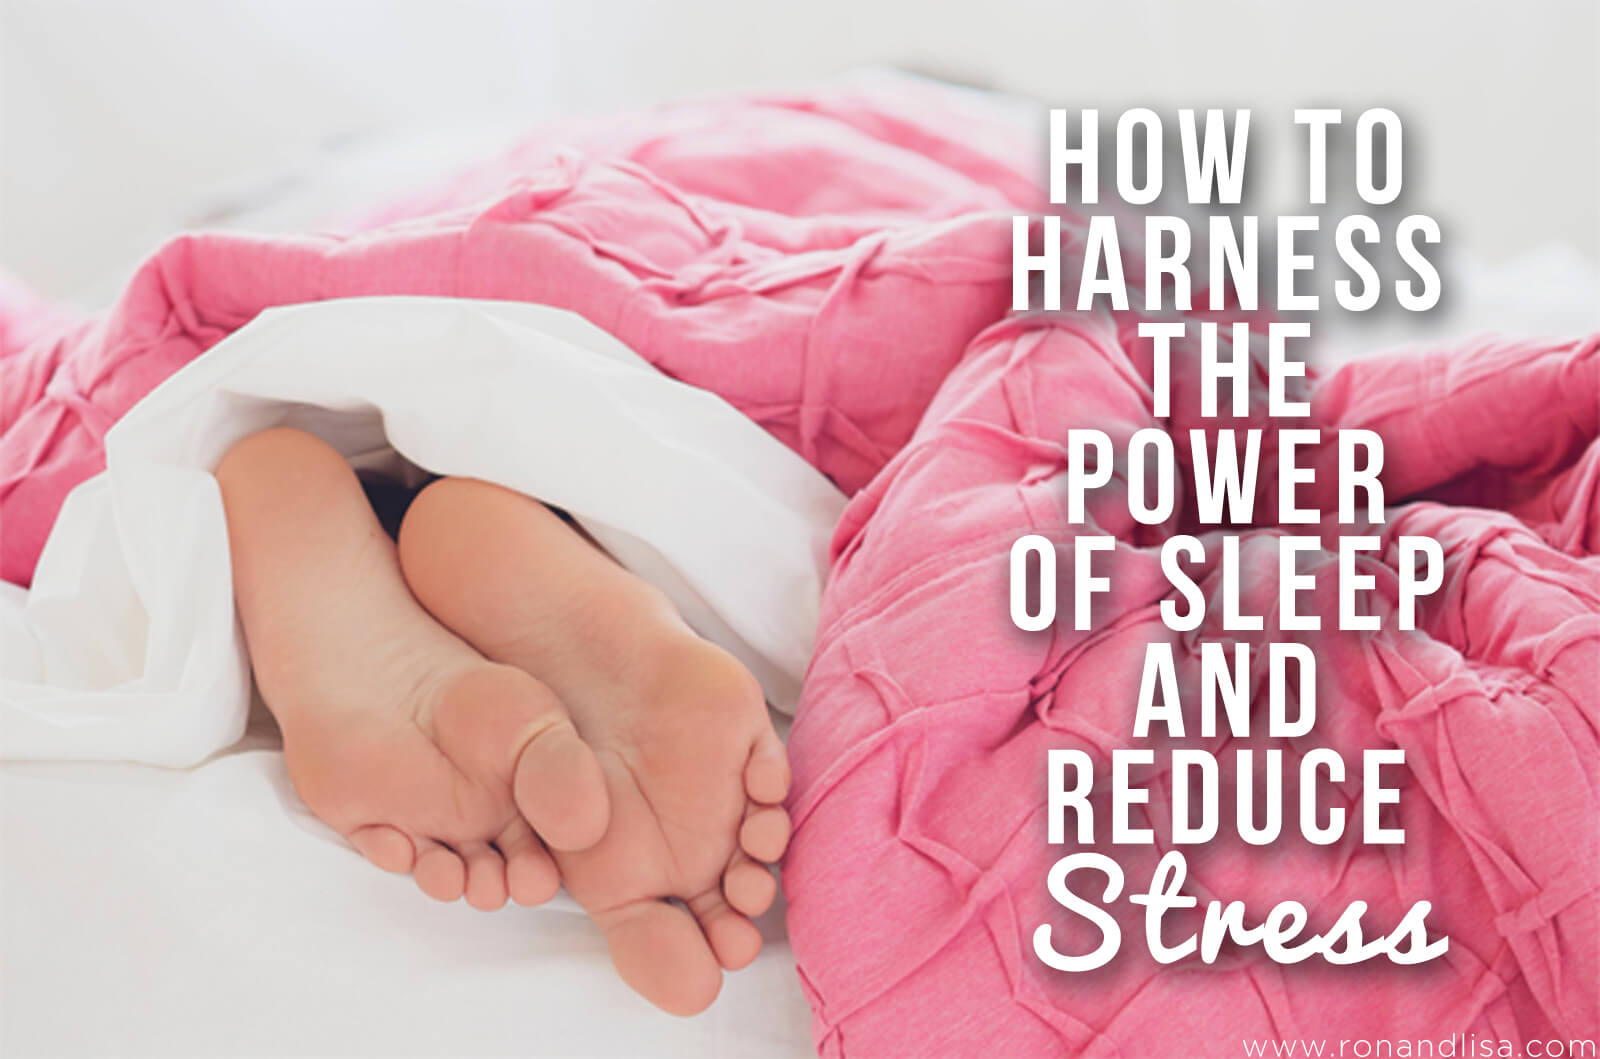 How to Harness the Power of Sleep